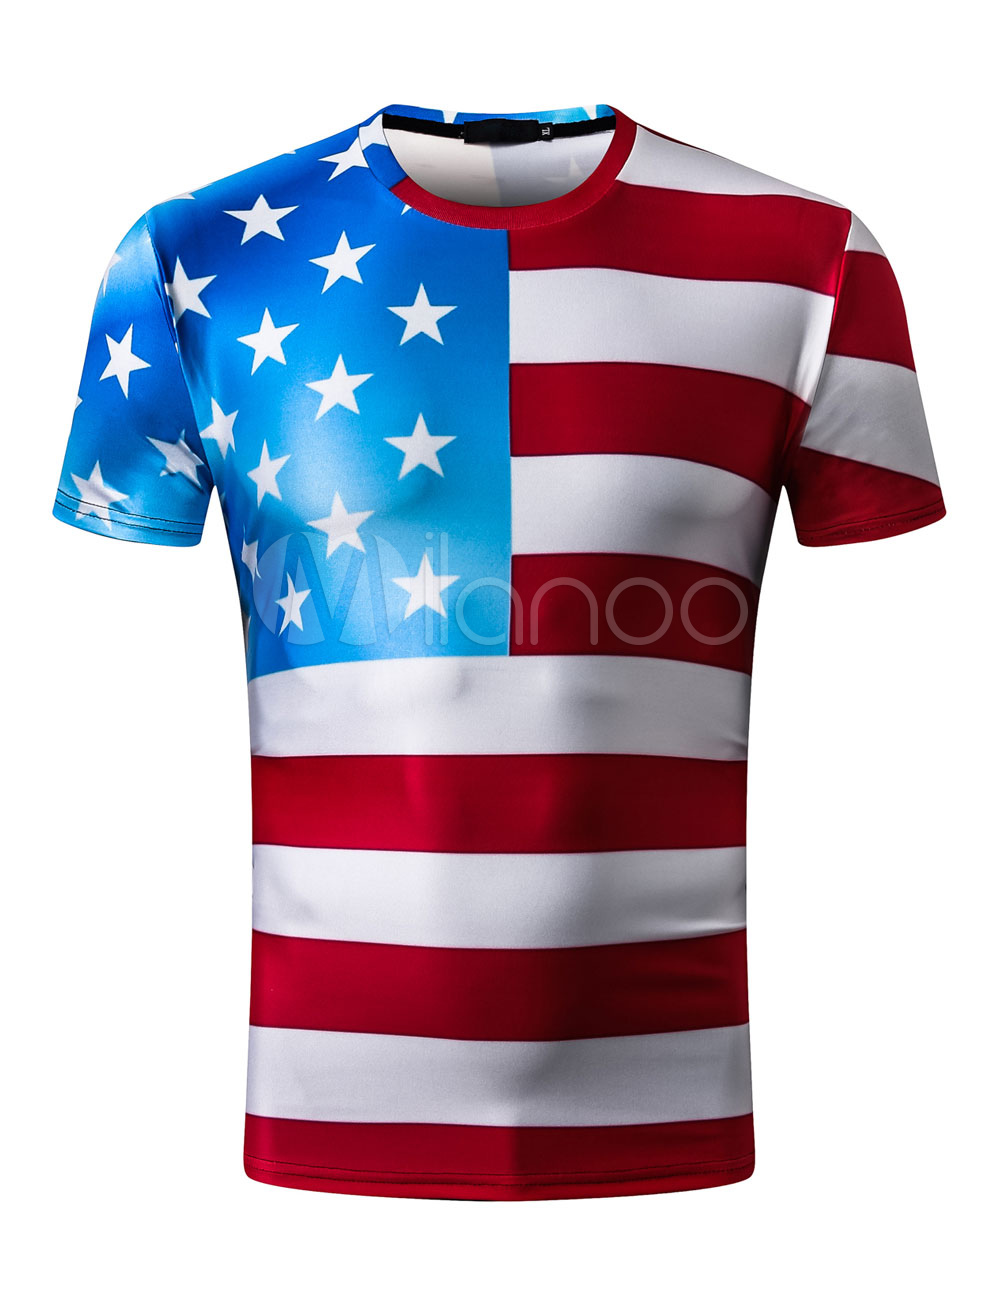 Buy Men T Shirt Patriotic American Flag Print The Stars And The Stripes Short Sleeve T Shirt for $11.69 in Milanoo store